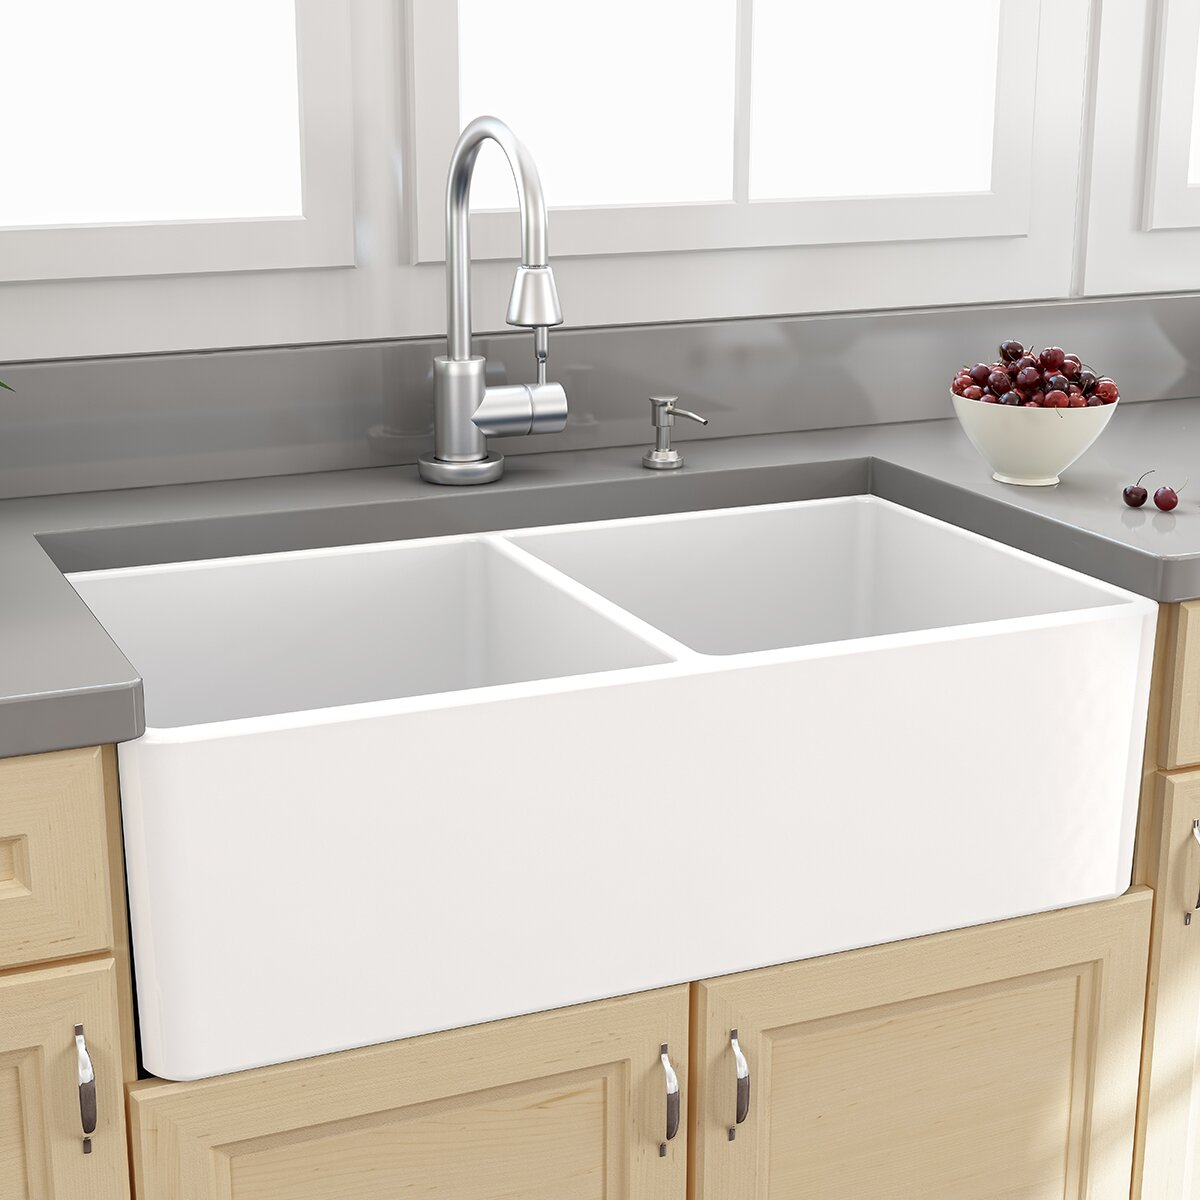 Nantucket sinks farmhouse 33 x 18 double bowl kitchen for Best kitchen faucet for double sink